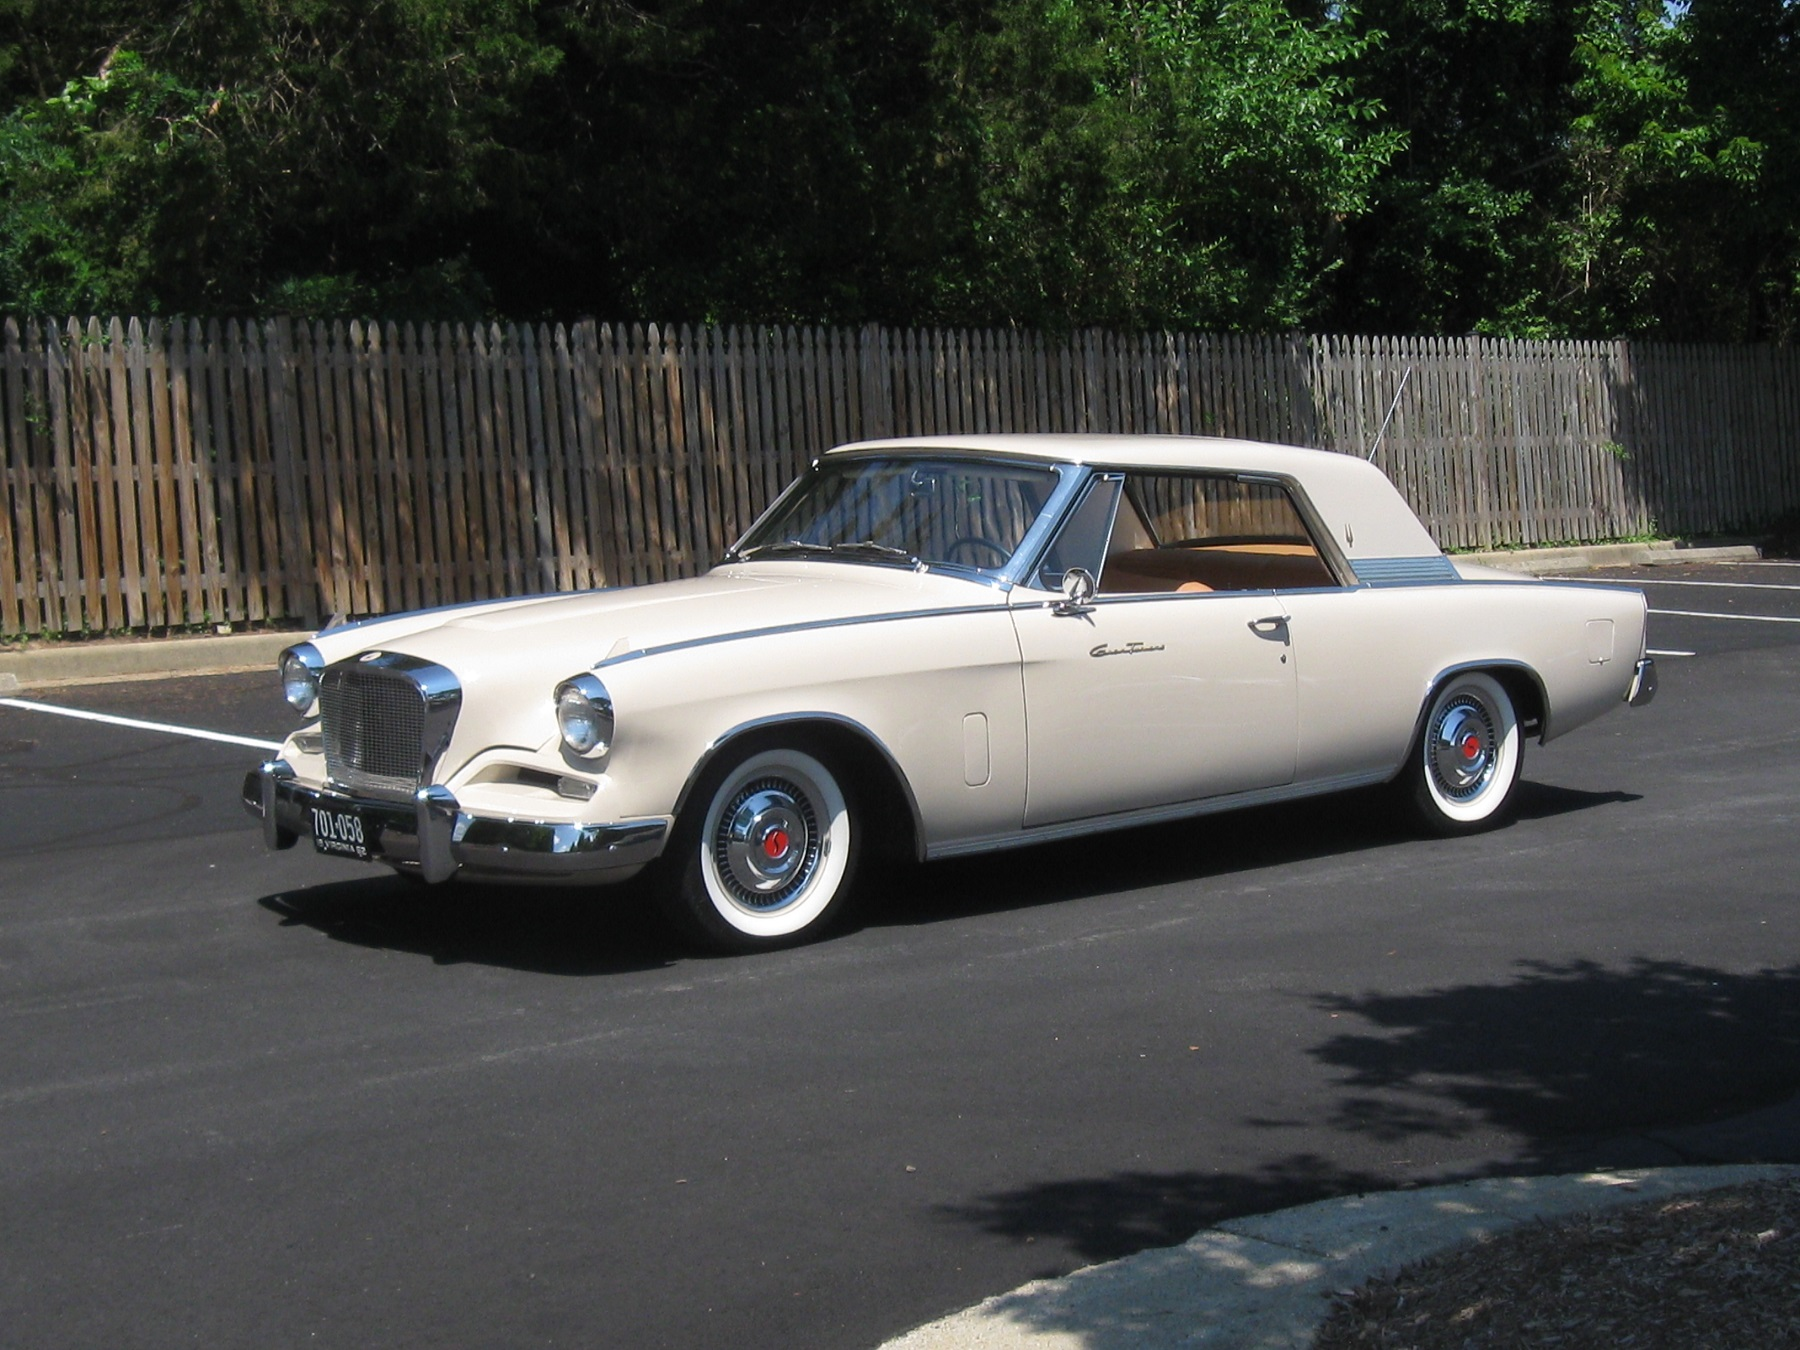 Old Cars for Sale Near Me Elegant Desire for Unique Old Car 1962 Studebaker Gt Hawk Carhub